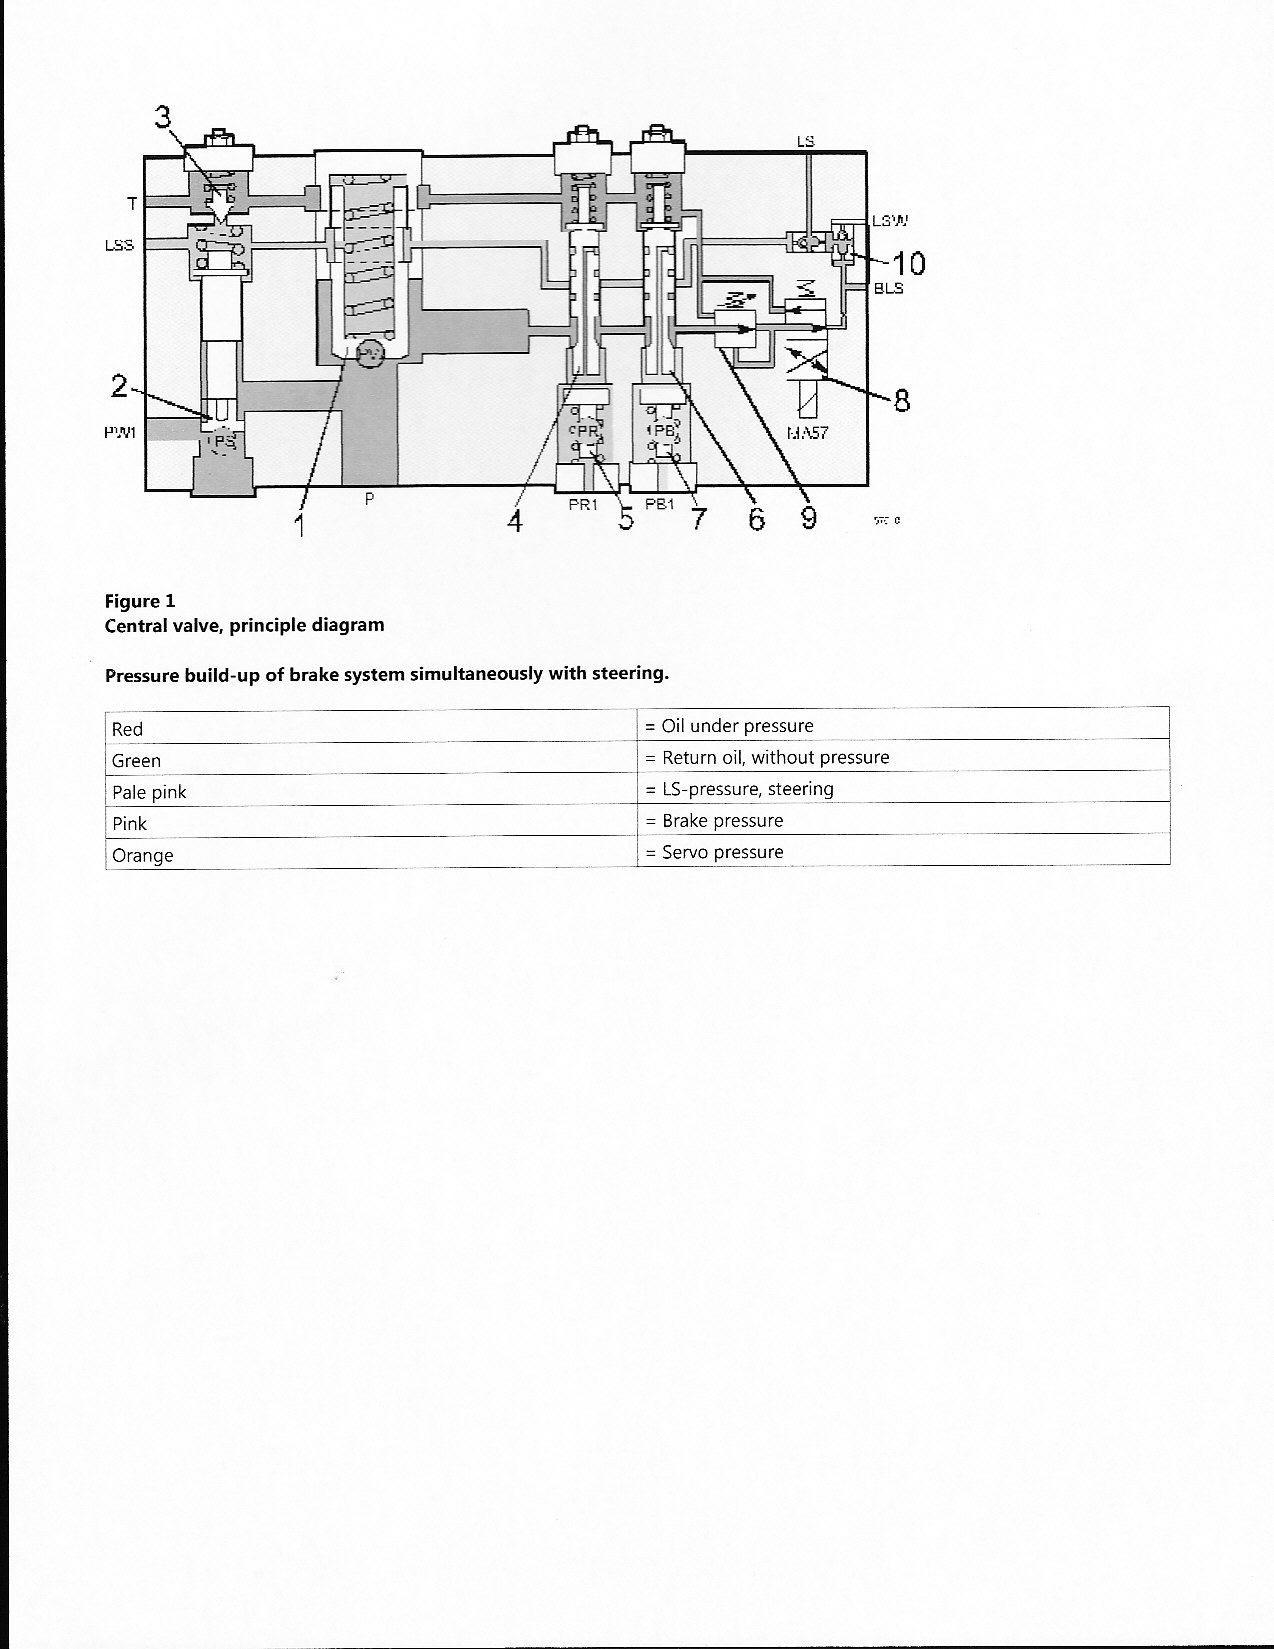 central hydraulics 91315 wiring diagram central electric motors wiring diagram volvo type l70c, s/n l70cu12299, pls. send us: 1. the hydr ...